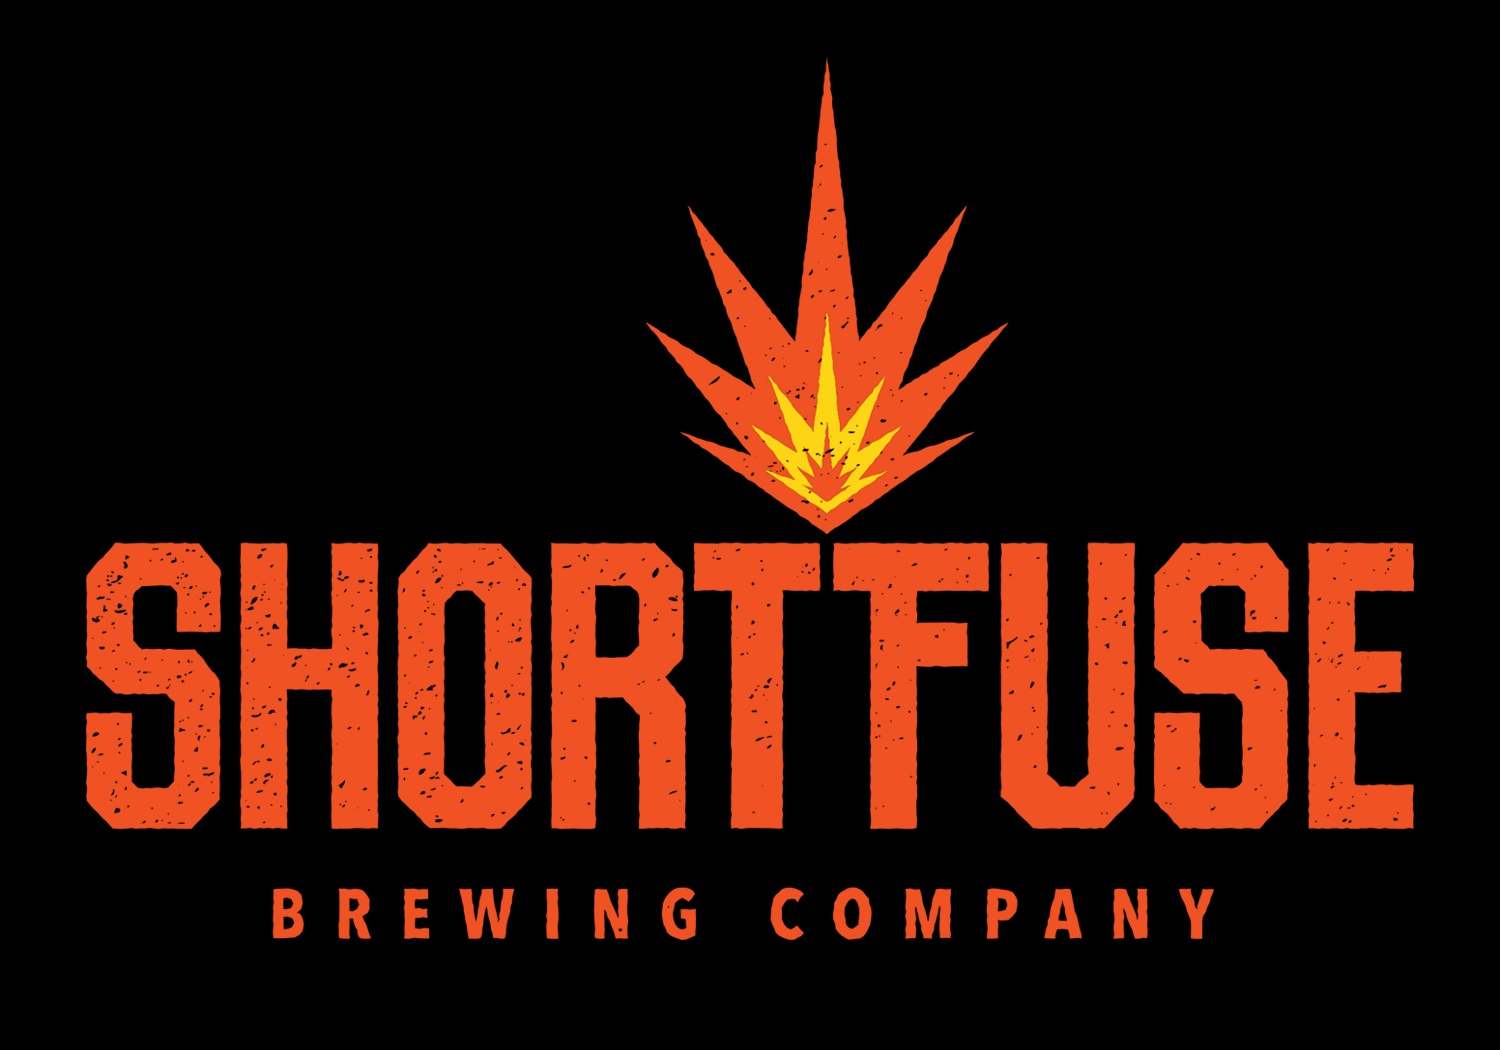 Branding for Chicago's Short Fuse Brewing Company